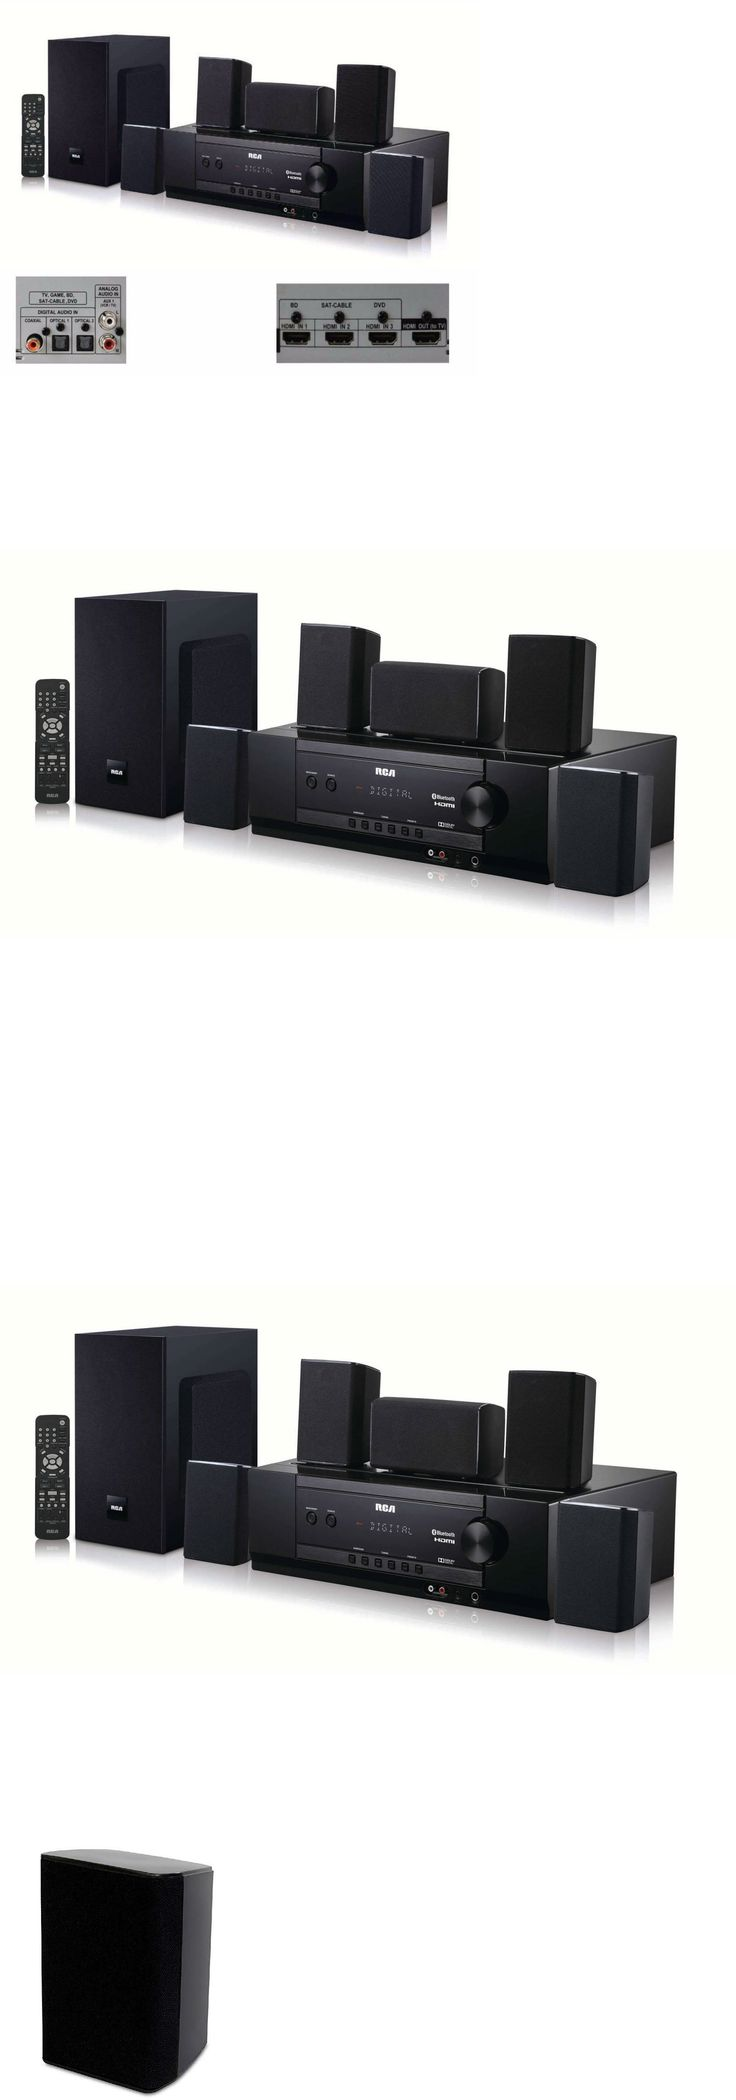 Home Theater Systems: Bluetooth Home Theater System 1000W Surround Sound Speakers Dolby Digital 5.1 -> BUY IT NOW ONLY: $204.99 on eBay!